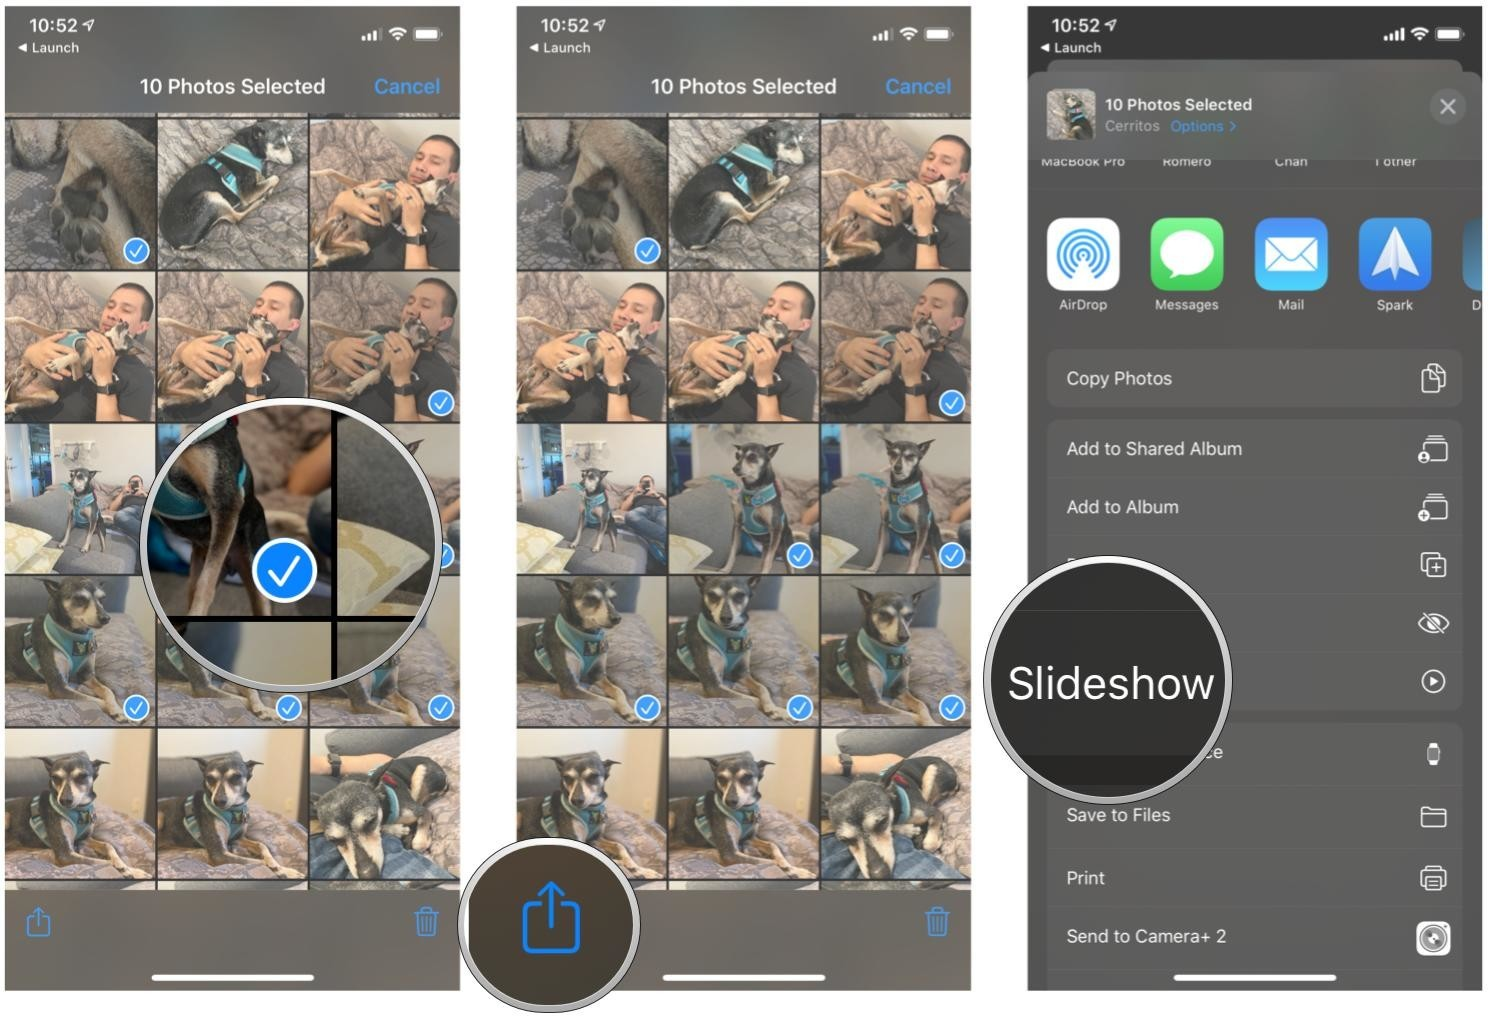 How To Use The Photos App To For Slideshows Setting Wallpaper And Contact Pics Imore